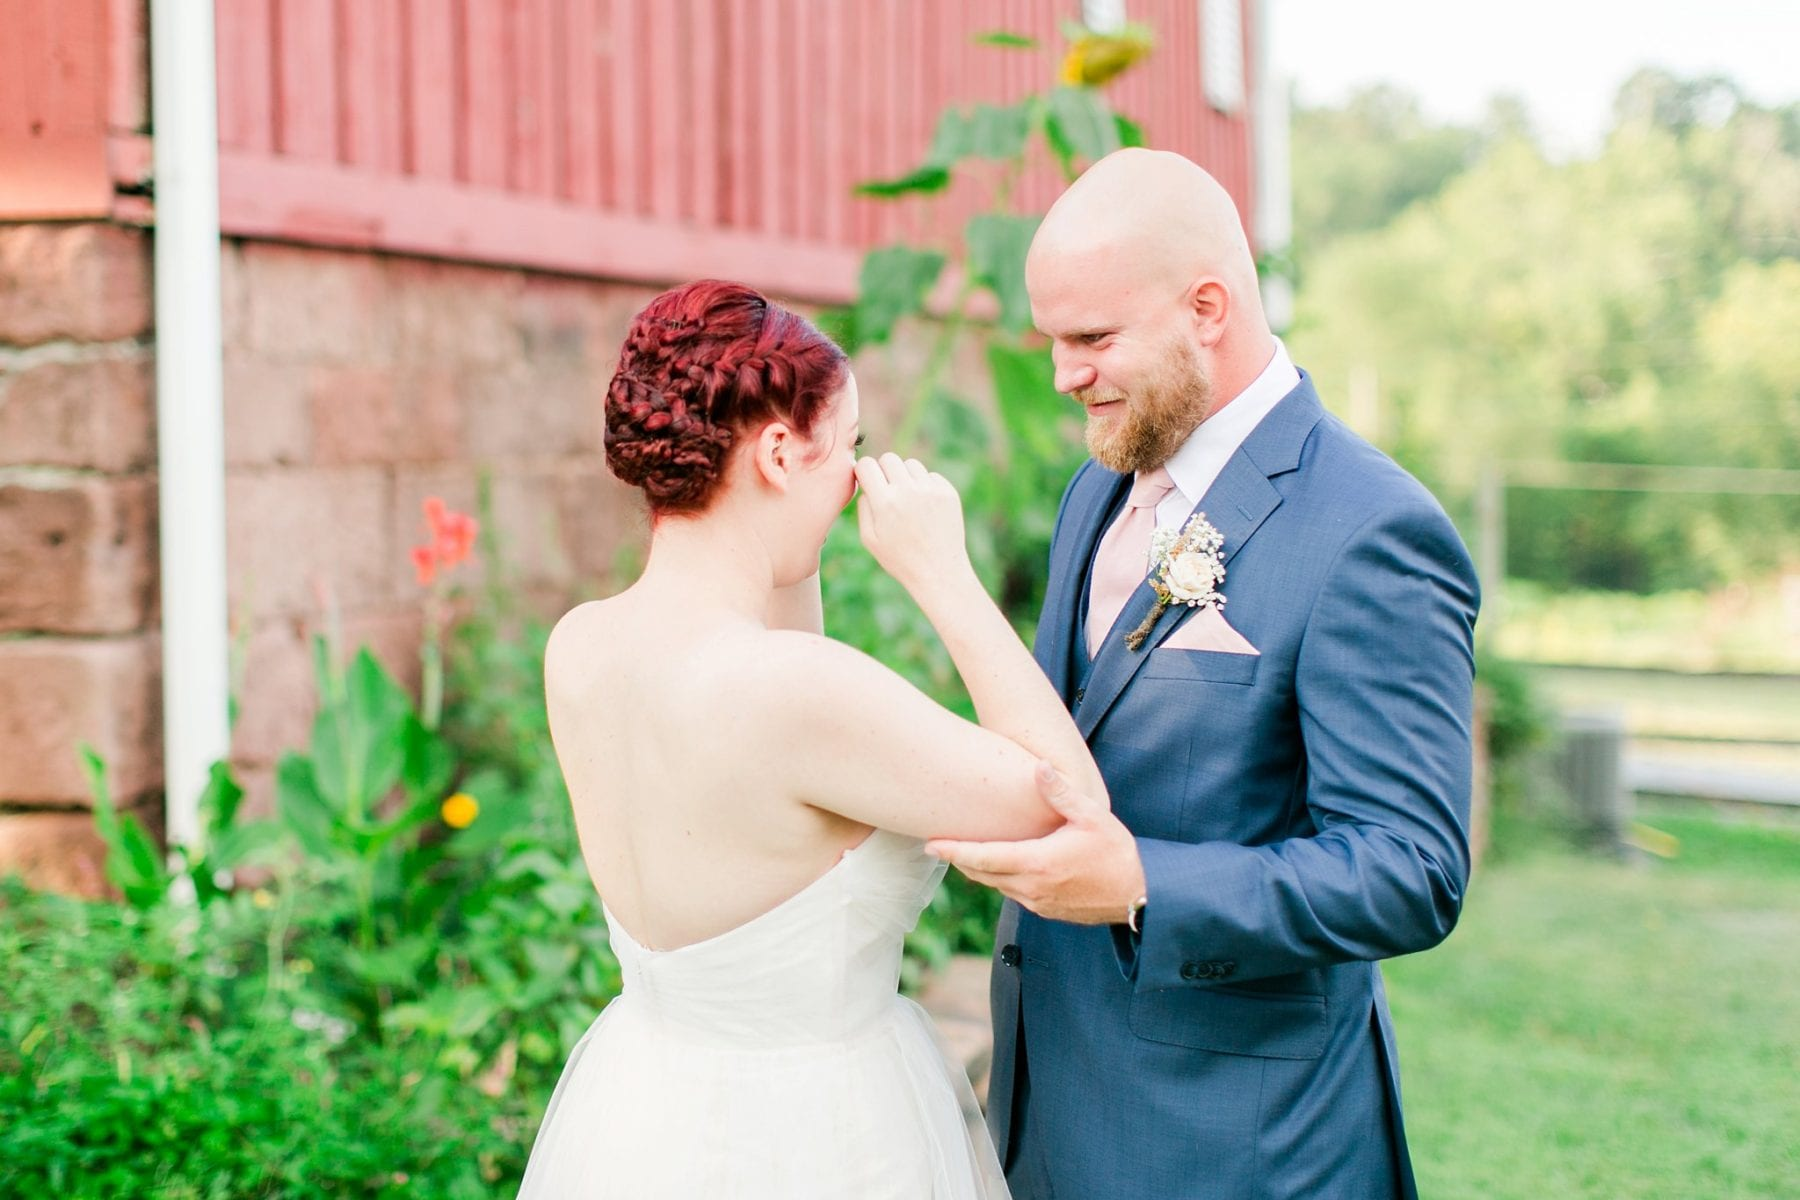 Rocklands Farm Wedding Virginia Wedding Photographer Megan Kelsey Photography Jessica & Jason-36.jpg